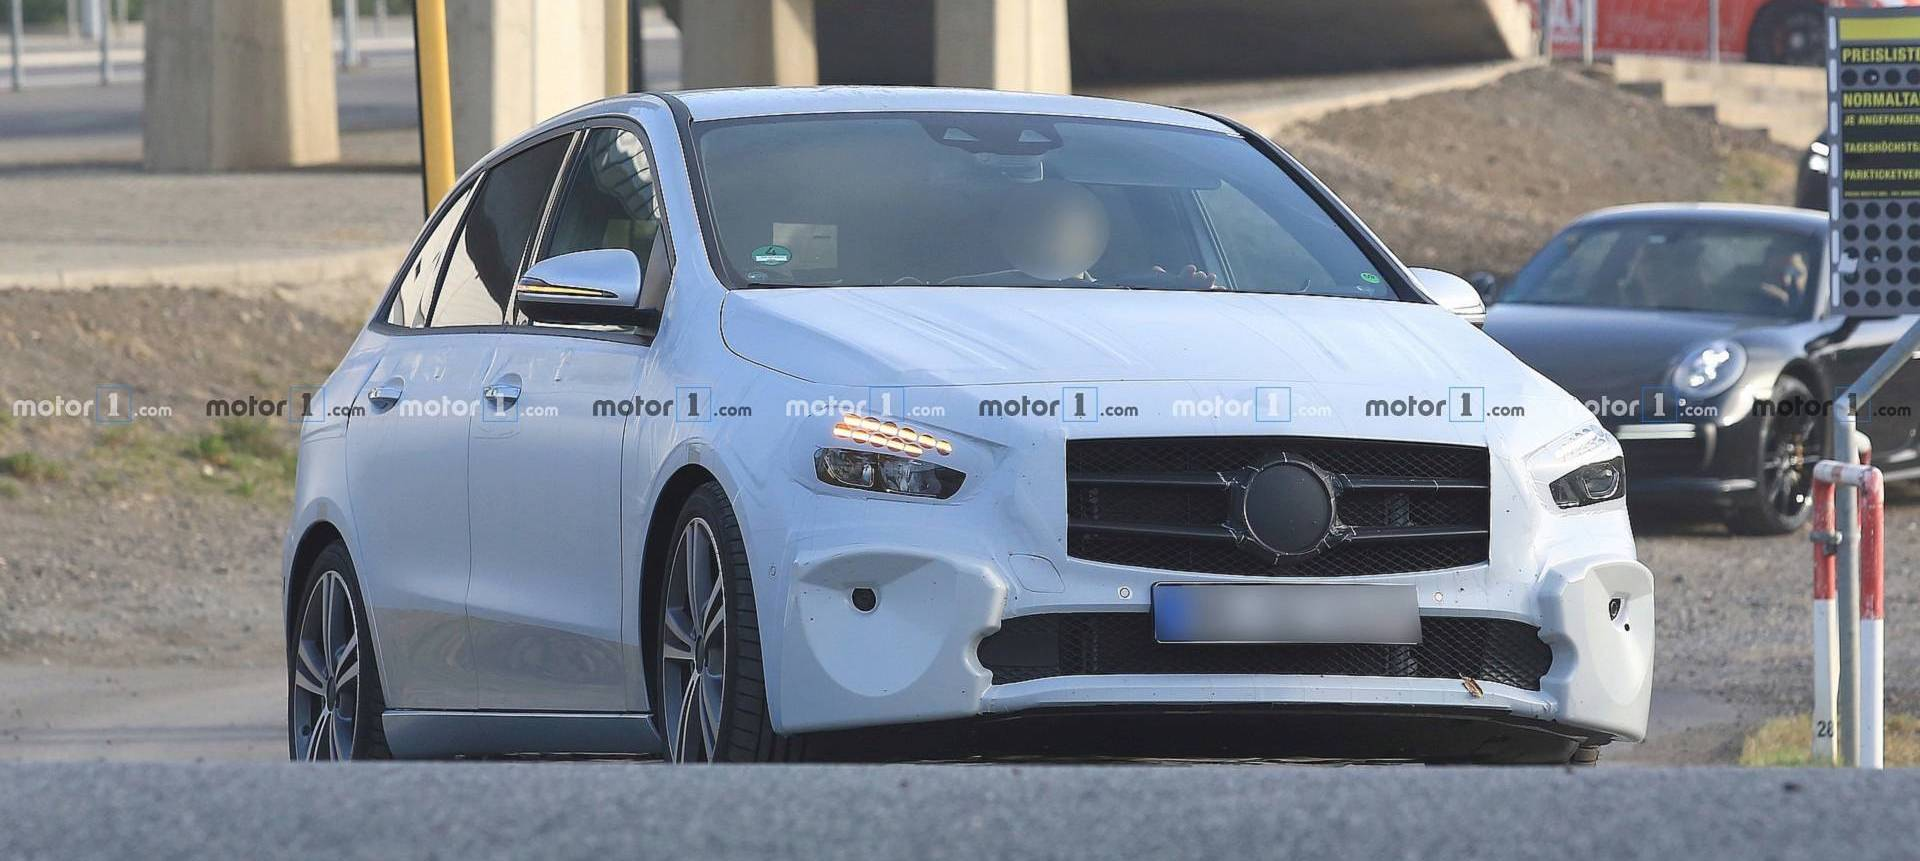 Mercedes B-Class Confirmed For Paris Show With S-Class Safety Tech